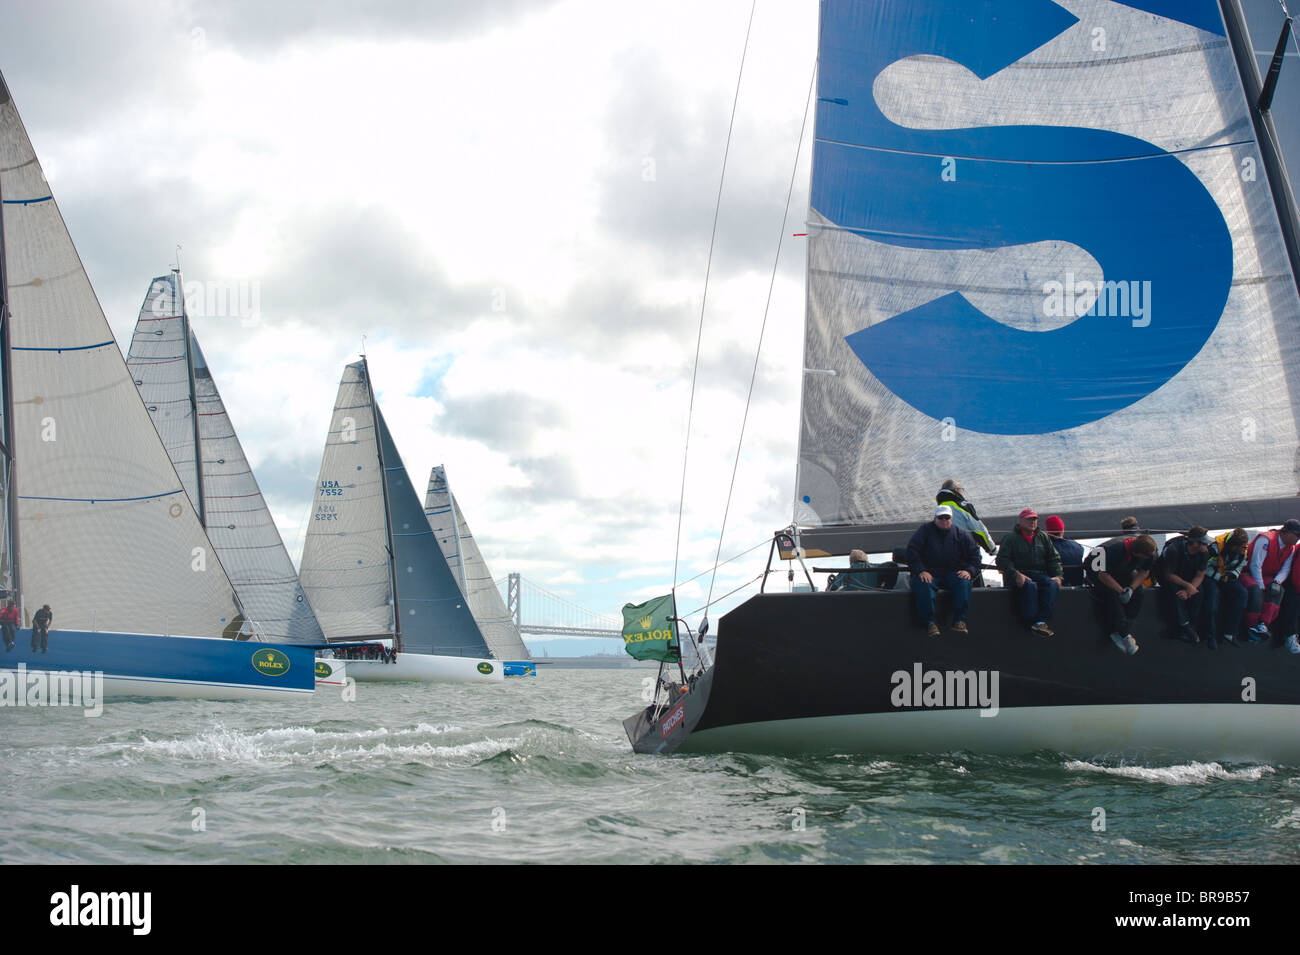 patches, winner of race 6 and #2 overall, pulls ahead of its irc a competitors Stock Photo